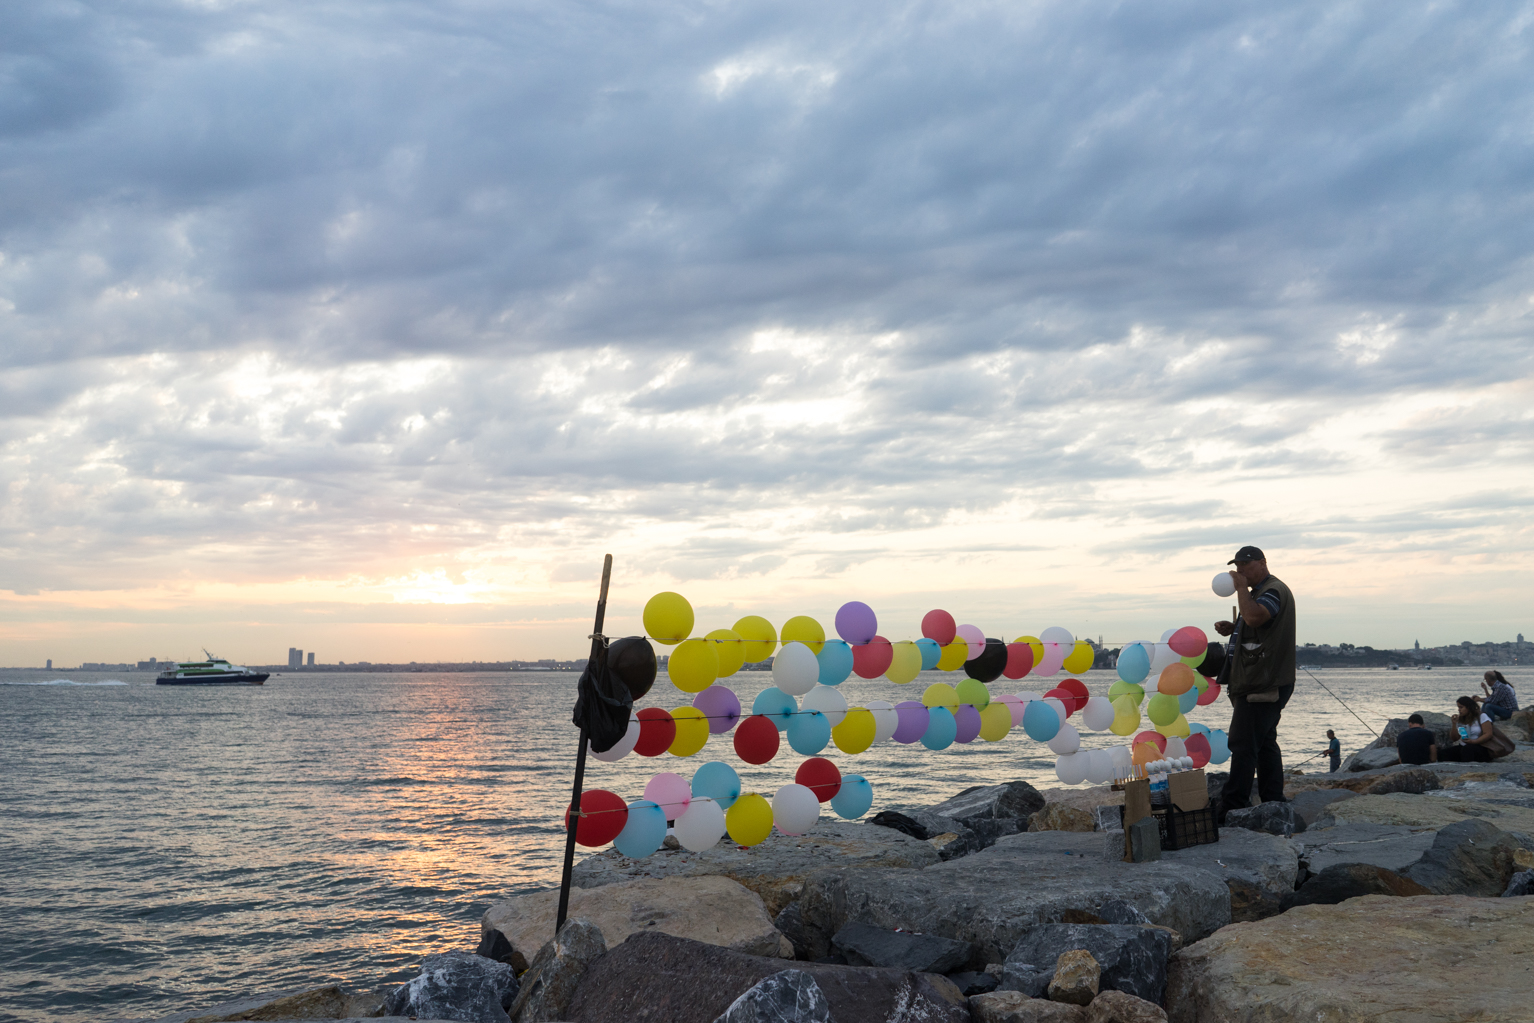 Balloon dark game set up on the Moda Seaside pathway in Kadiköy.